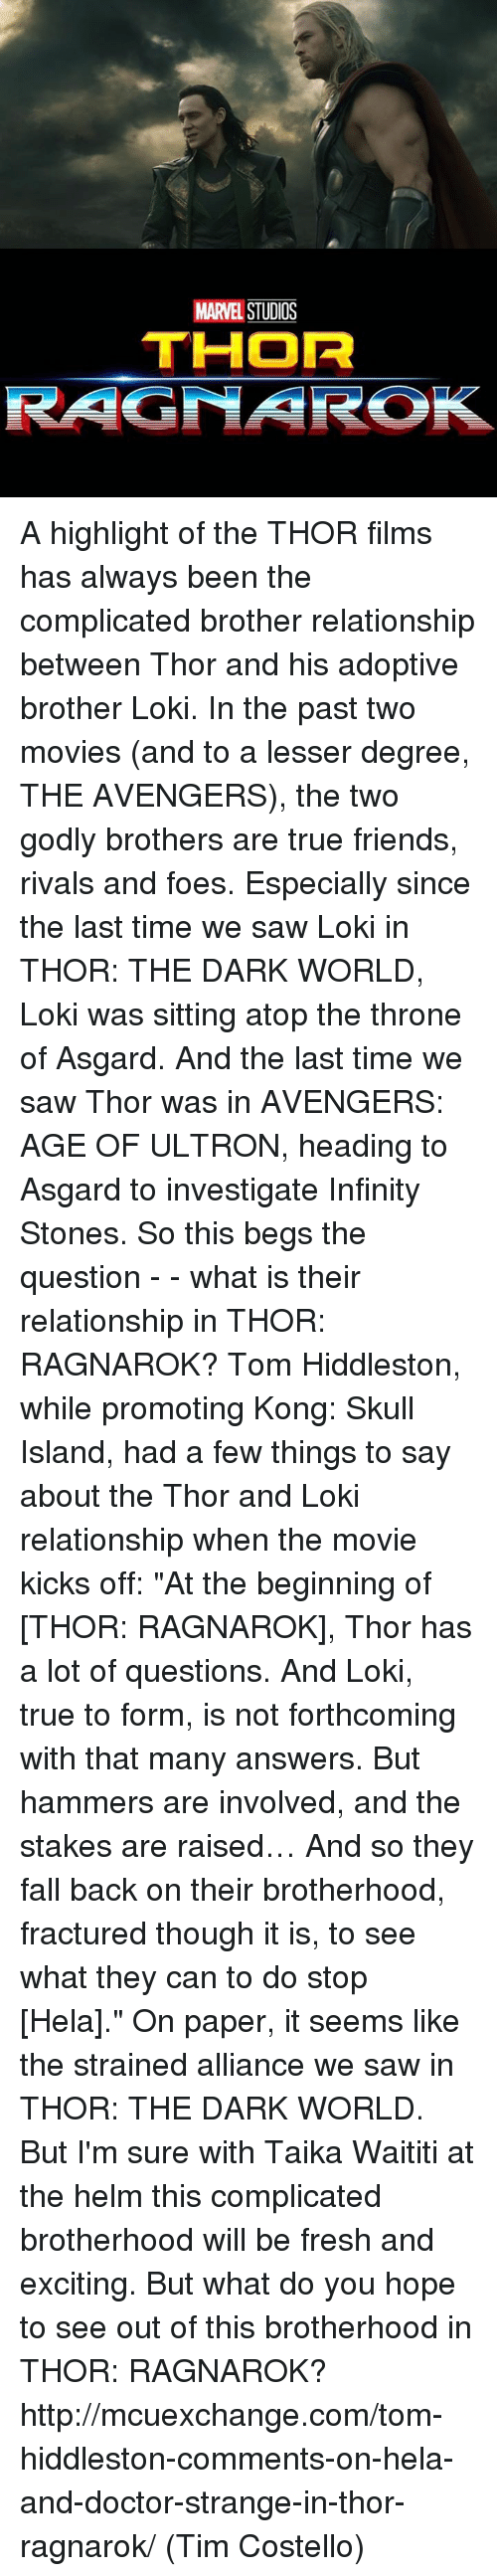 """Hiddlestoners: MARVEL  STUDOS  THOR  RAGNAROK A highlight of the THOR films has always been the complicated brother relationship between Thor and his adoptive brother Loki. In the past two movies (and to a lesser degree, THE AVENGERS), the two godly brothers are true friends, rivals and foes. Especially since the last time we saw Loki in THOR: THE DARK WORLD, Loki was sitting atop the throne of Asgard. And the last time we saw Thor was in AVENGERS: AGE OF ULTRON, heading to Asgard to investigate Infinity Stones. So this begs the question - - what is their relationship in THOR: RAGNAROK?  Tom Hiddleston, while promoting Kong: Skull Island, had a few things to say about the Thor and Loki relationship when the movie kicks off:  """"At the beginning of [THOR: RAGNAROK], Thor has a lot of questions. And Loki, true to form, is not forthcoming with that many answers. But hammers are involved, and the stakes are raised… And so they fall back on their brotherhood, fractured though it is, to see what they can to do stop [Hela].""""  On paper, it seems like the strained alliance we saw in THOR: THE DARK WORLD. But I'm sure with Taika Waititi at the helm this complicated brotherhood will be fresh and exciting. But what do you hope to see out of this brotherhood in THOR: RAGNAROK?  http://mcuexchange.com/tom-hiddleston-comments-on-hela-and-doctor-strange-in-thor-ragnarok/  (Tim Costello)"""